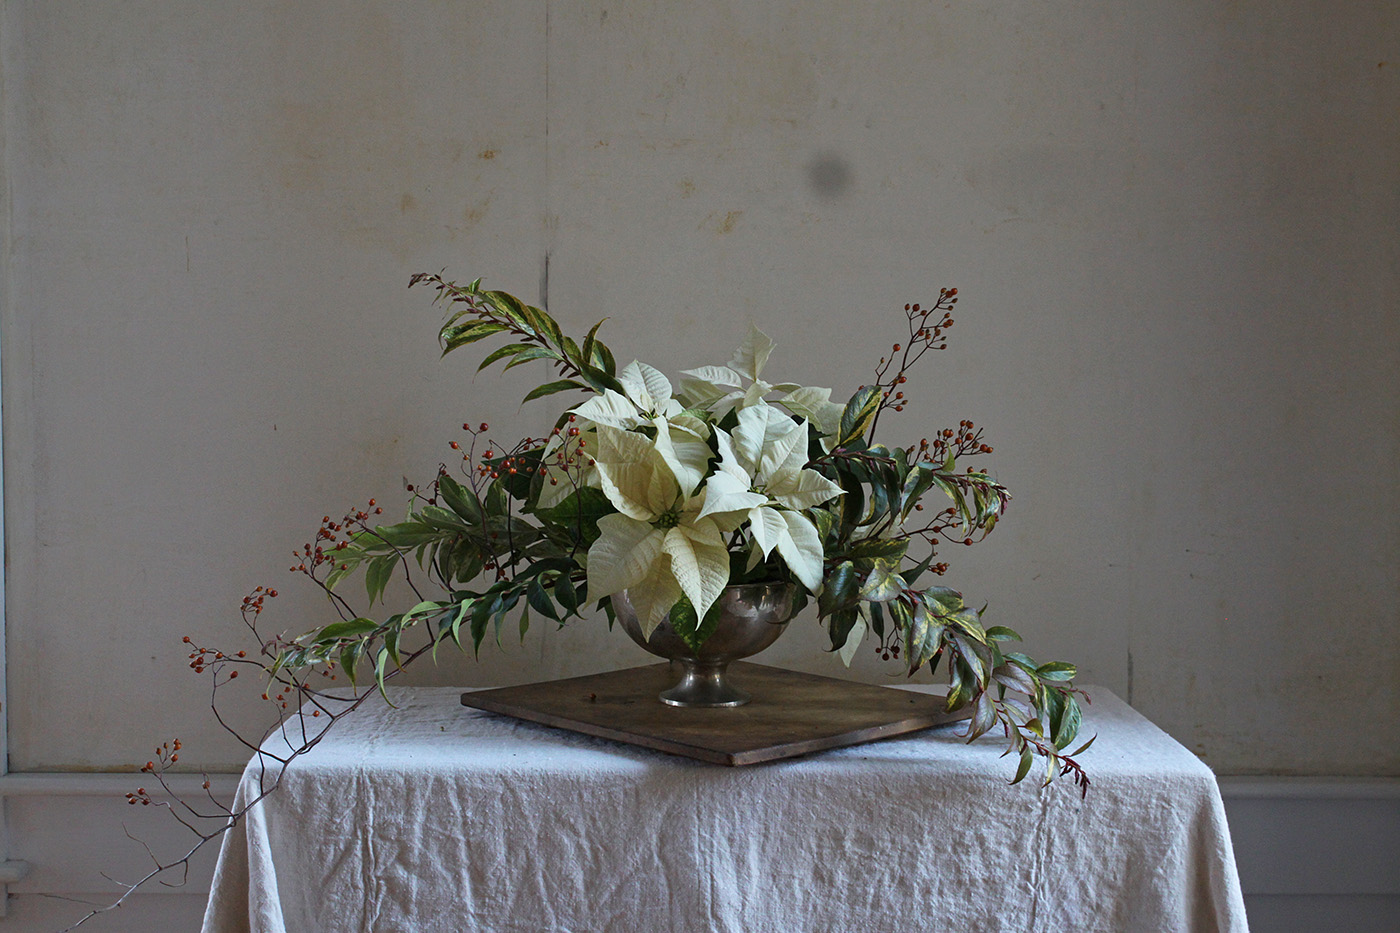 Poinsettia bouquet with rose hips, finished arrangement, by Justine Hand for Gardenista